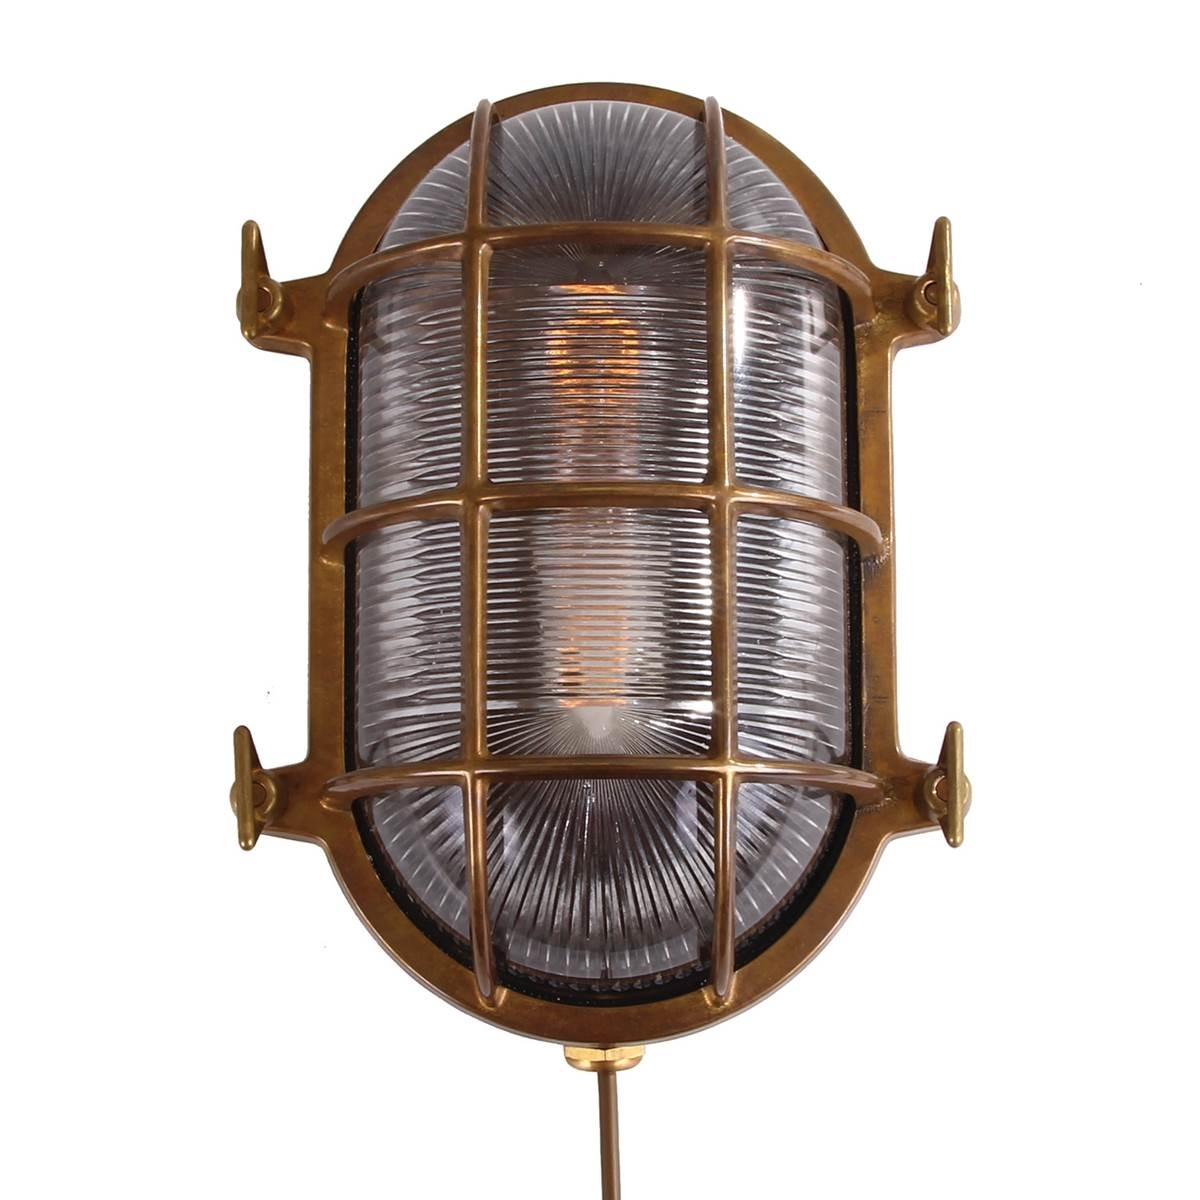 Image of: Ross Marine Nautical Bulkhead Wall Light Mullan Lighting Pertaining To Outdoor Bulkhead Lighting Wonderful Garden Outdoor Bulkhead Lighting